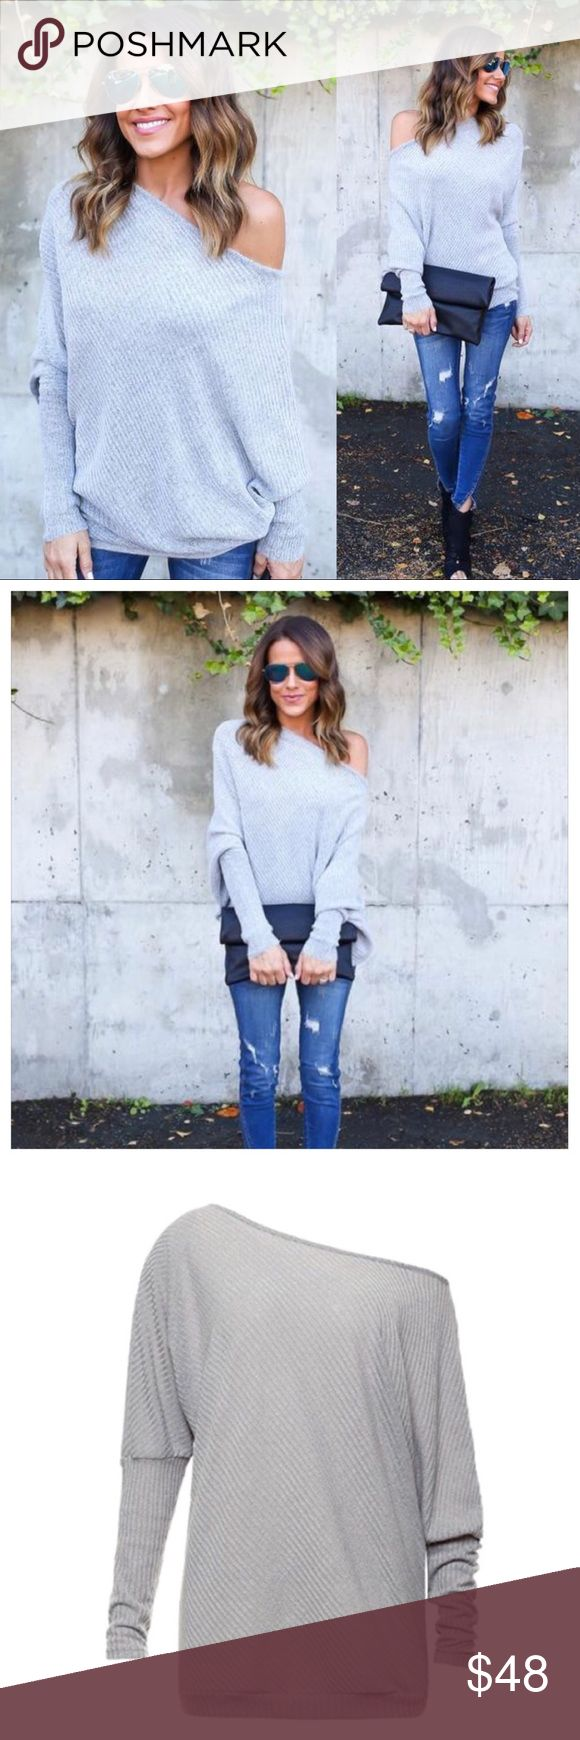 """Cozy Off The Shoulder Sweater This Cozy Sweater is to die for, so soft to the touch! The ribbed body and cowl neck can be worn on or off the shoulder! We're dreaming of a cozy fall in this gem. The long sleeves are easy to pull up or down and the asymmetrical hem is on trend. Off One Shoulder Dolman Fit Cotton  Size Small: 24"""" from shoulder to hem Model is 5'4"""" and wears a Small Sizing chart above for reference. Also available in black & burgundy 🙂REASONABLE offers welcome Bundle of  1 will…"""